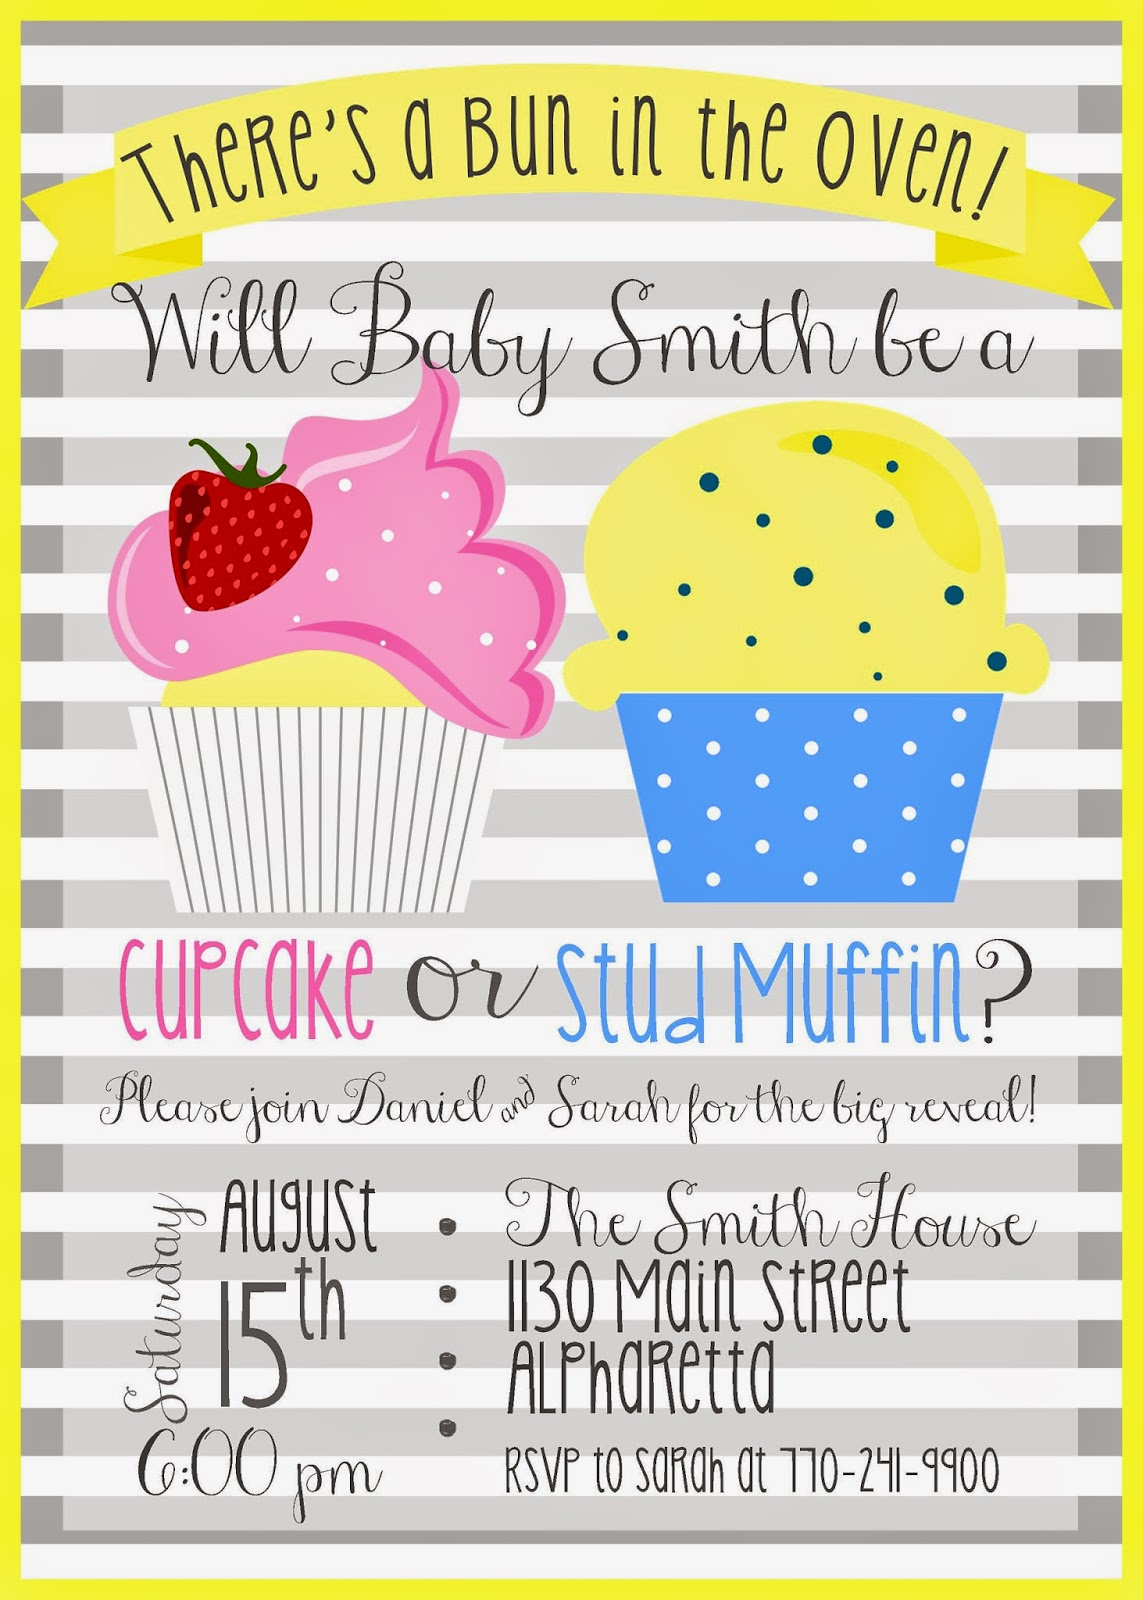 Sweet Leigh Mama - Atlanta Mommy Blog: Creative Gender Reveal Party ...